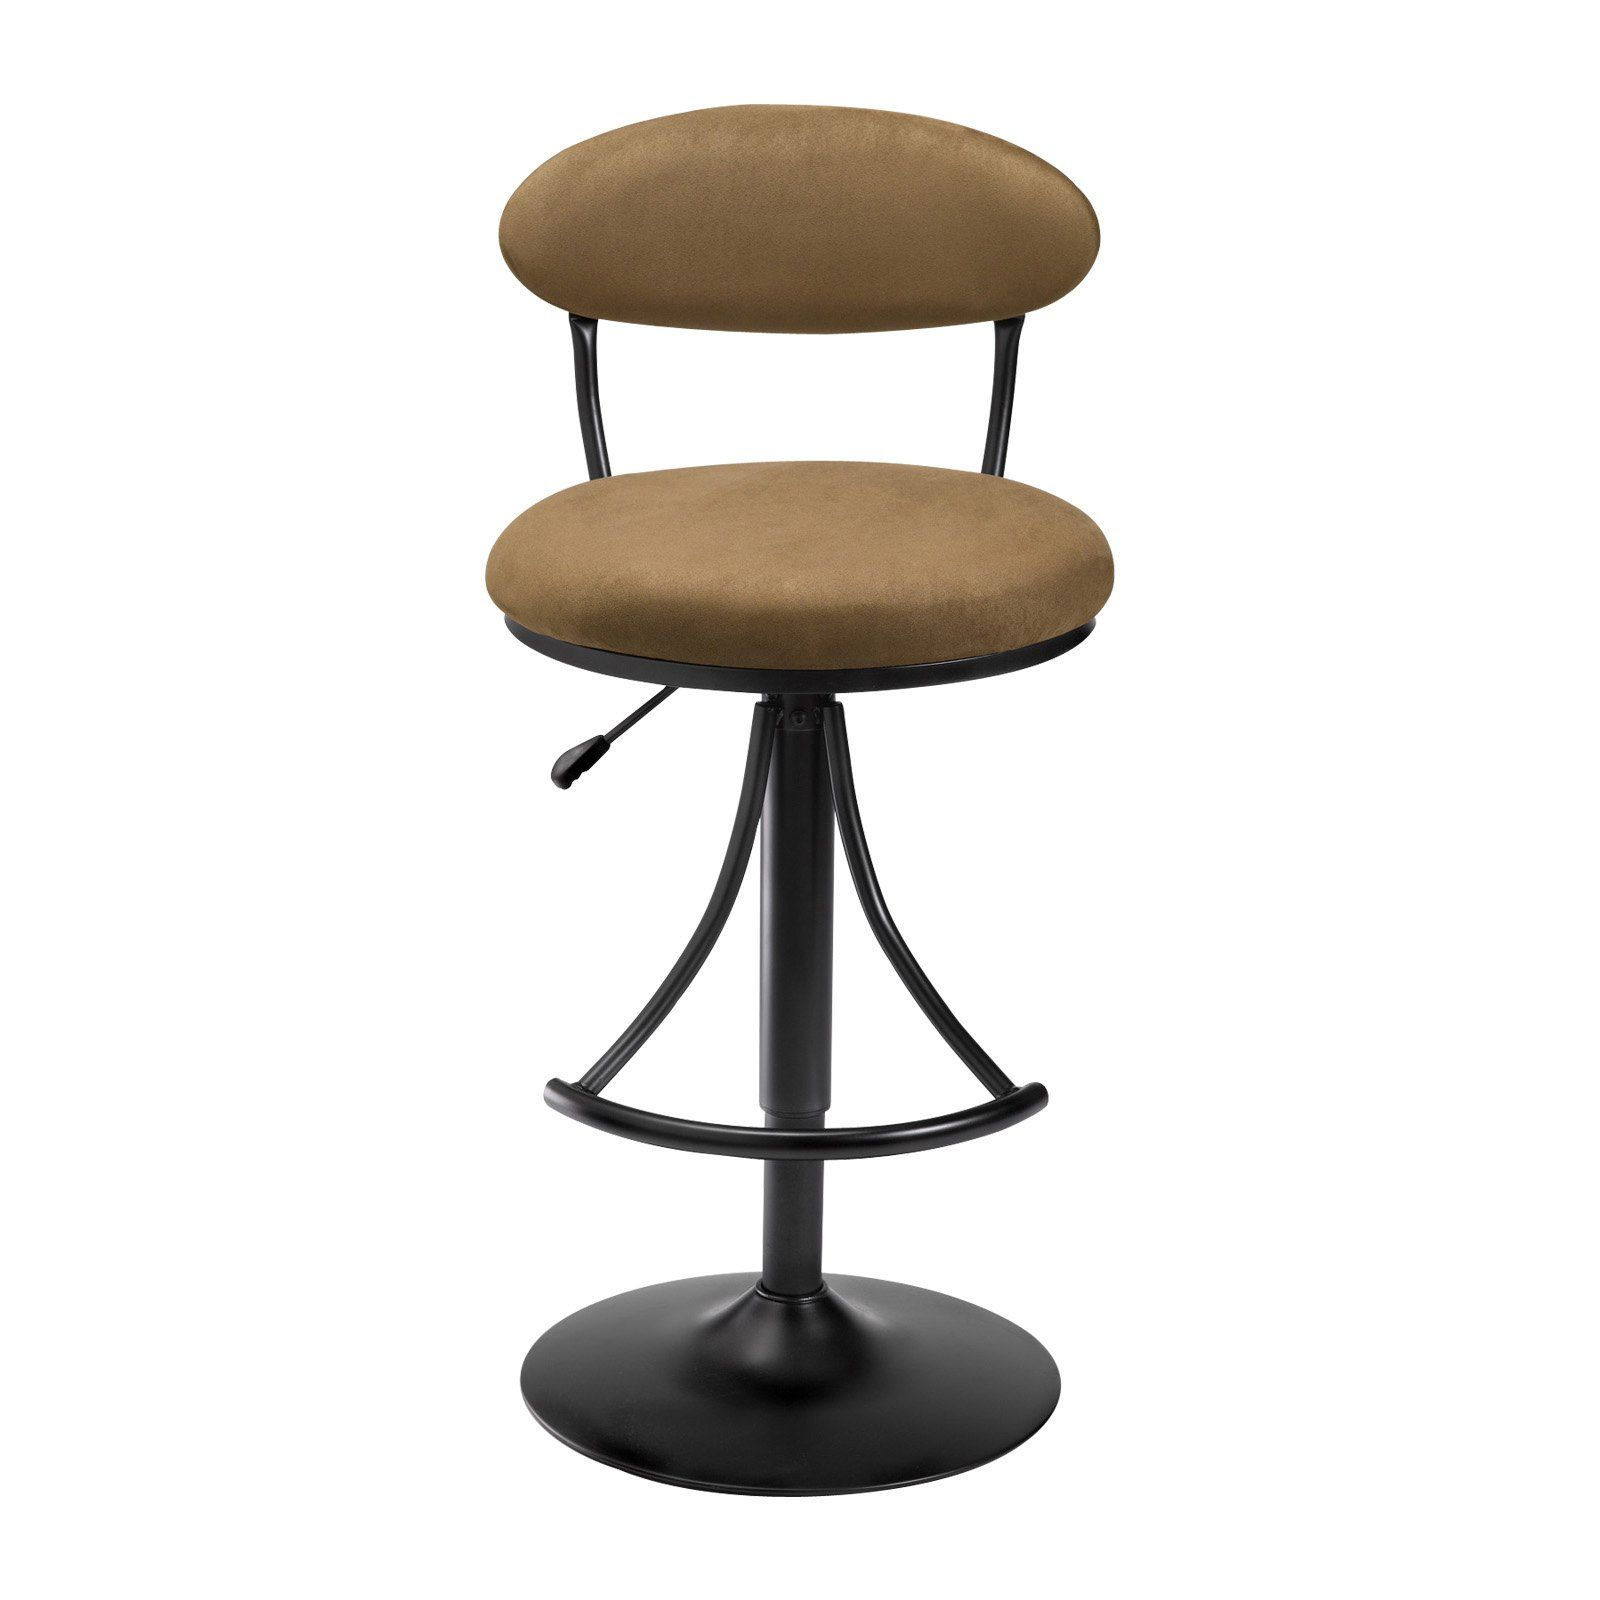 Fresh Adjustable Counter Stools with Backs